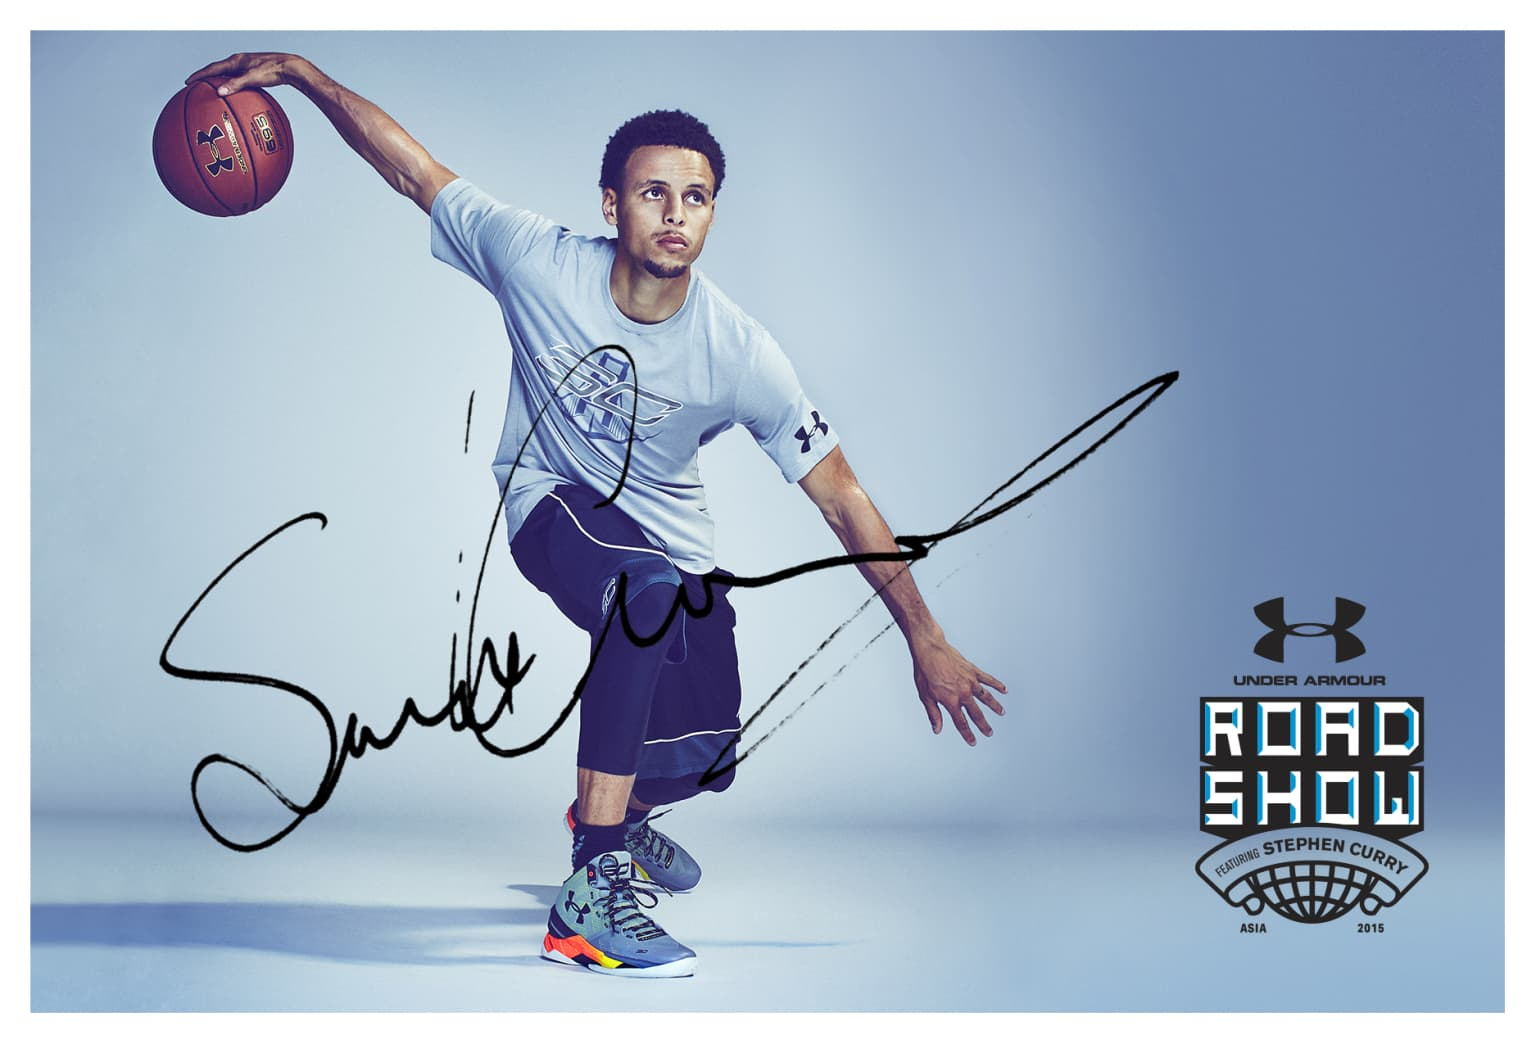 Under Armour Road Show